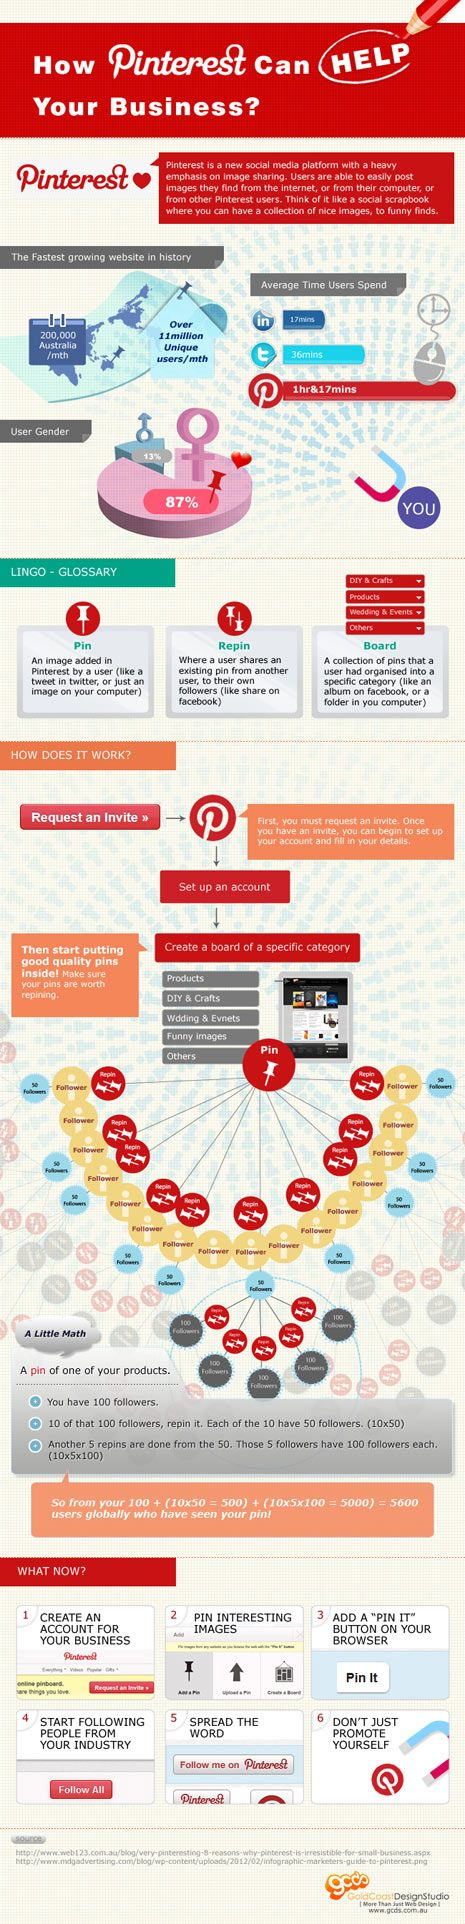 How #Pinterest can help your #business? #infographic